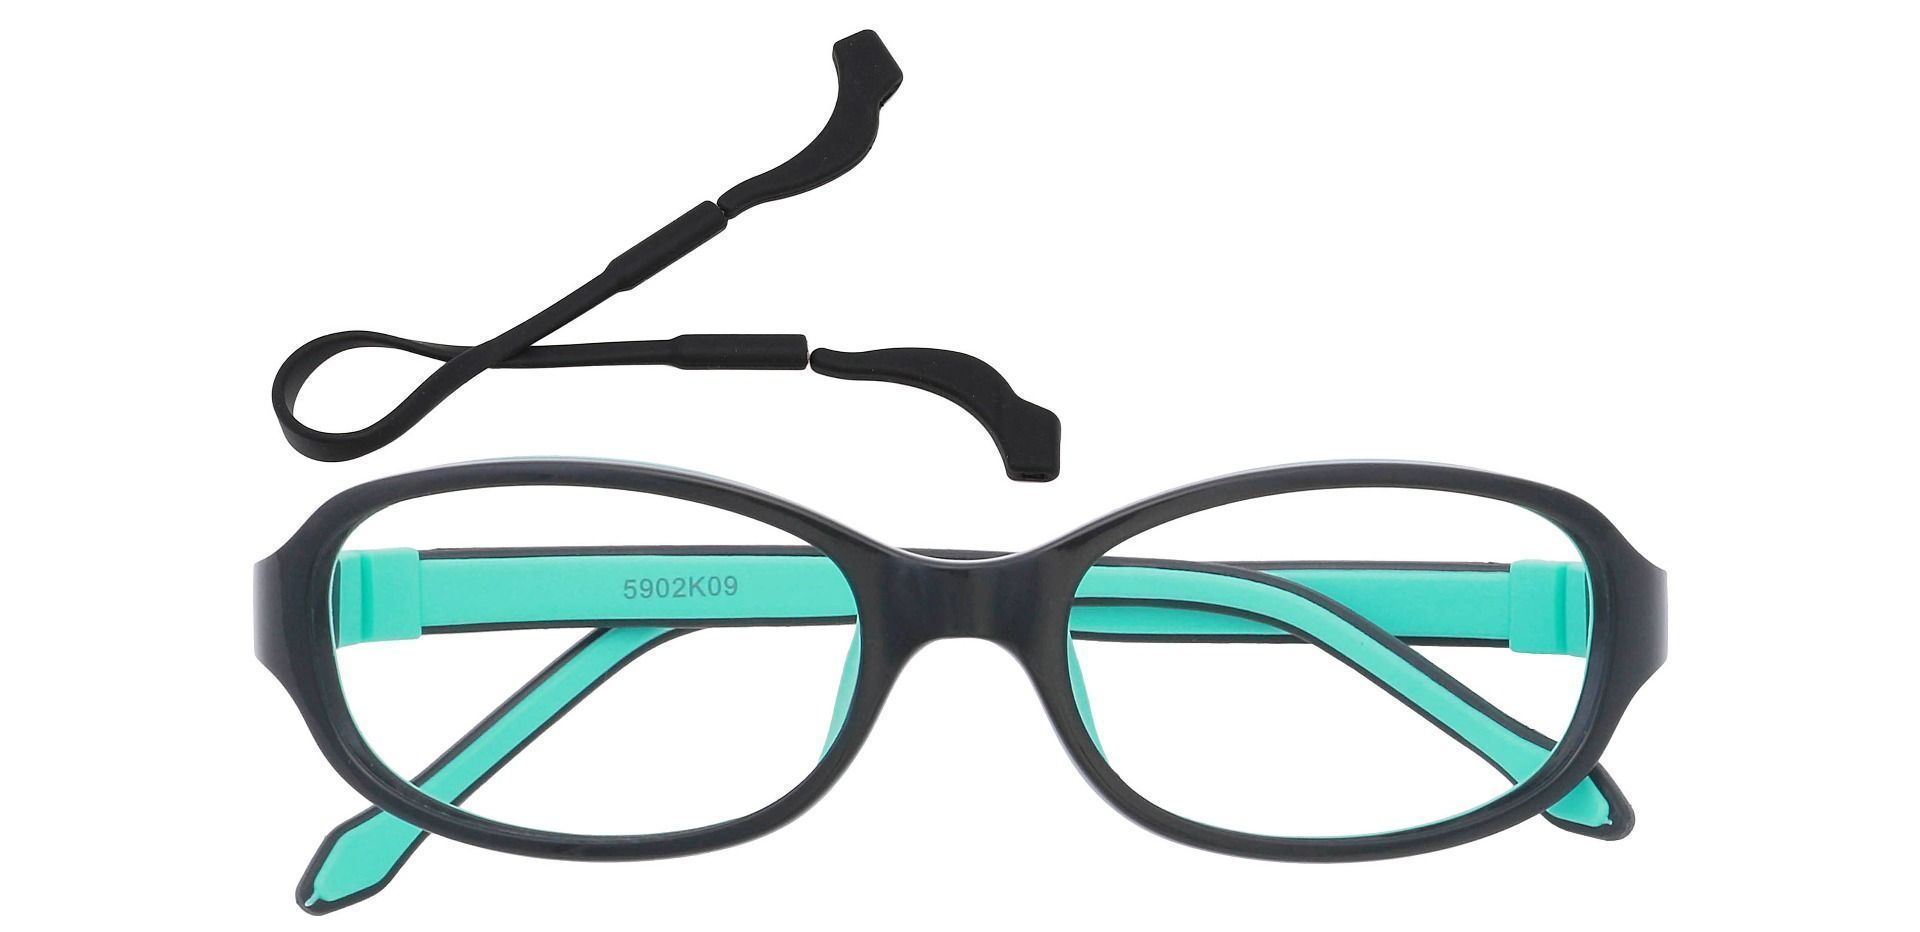 Toucan Rectangle Prescription Glasses - The Frame Is Black With Green